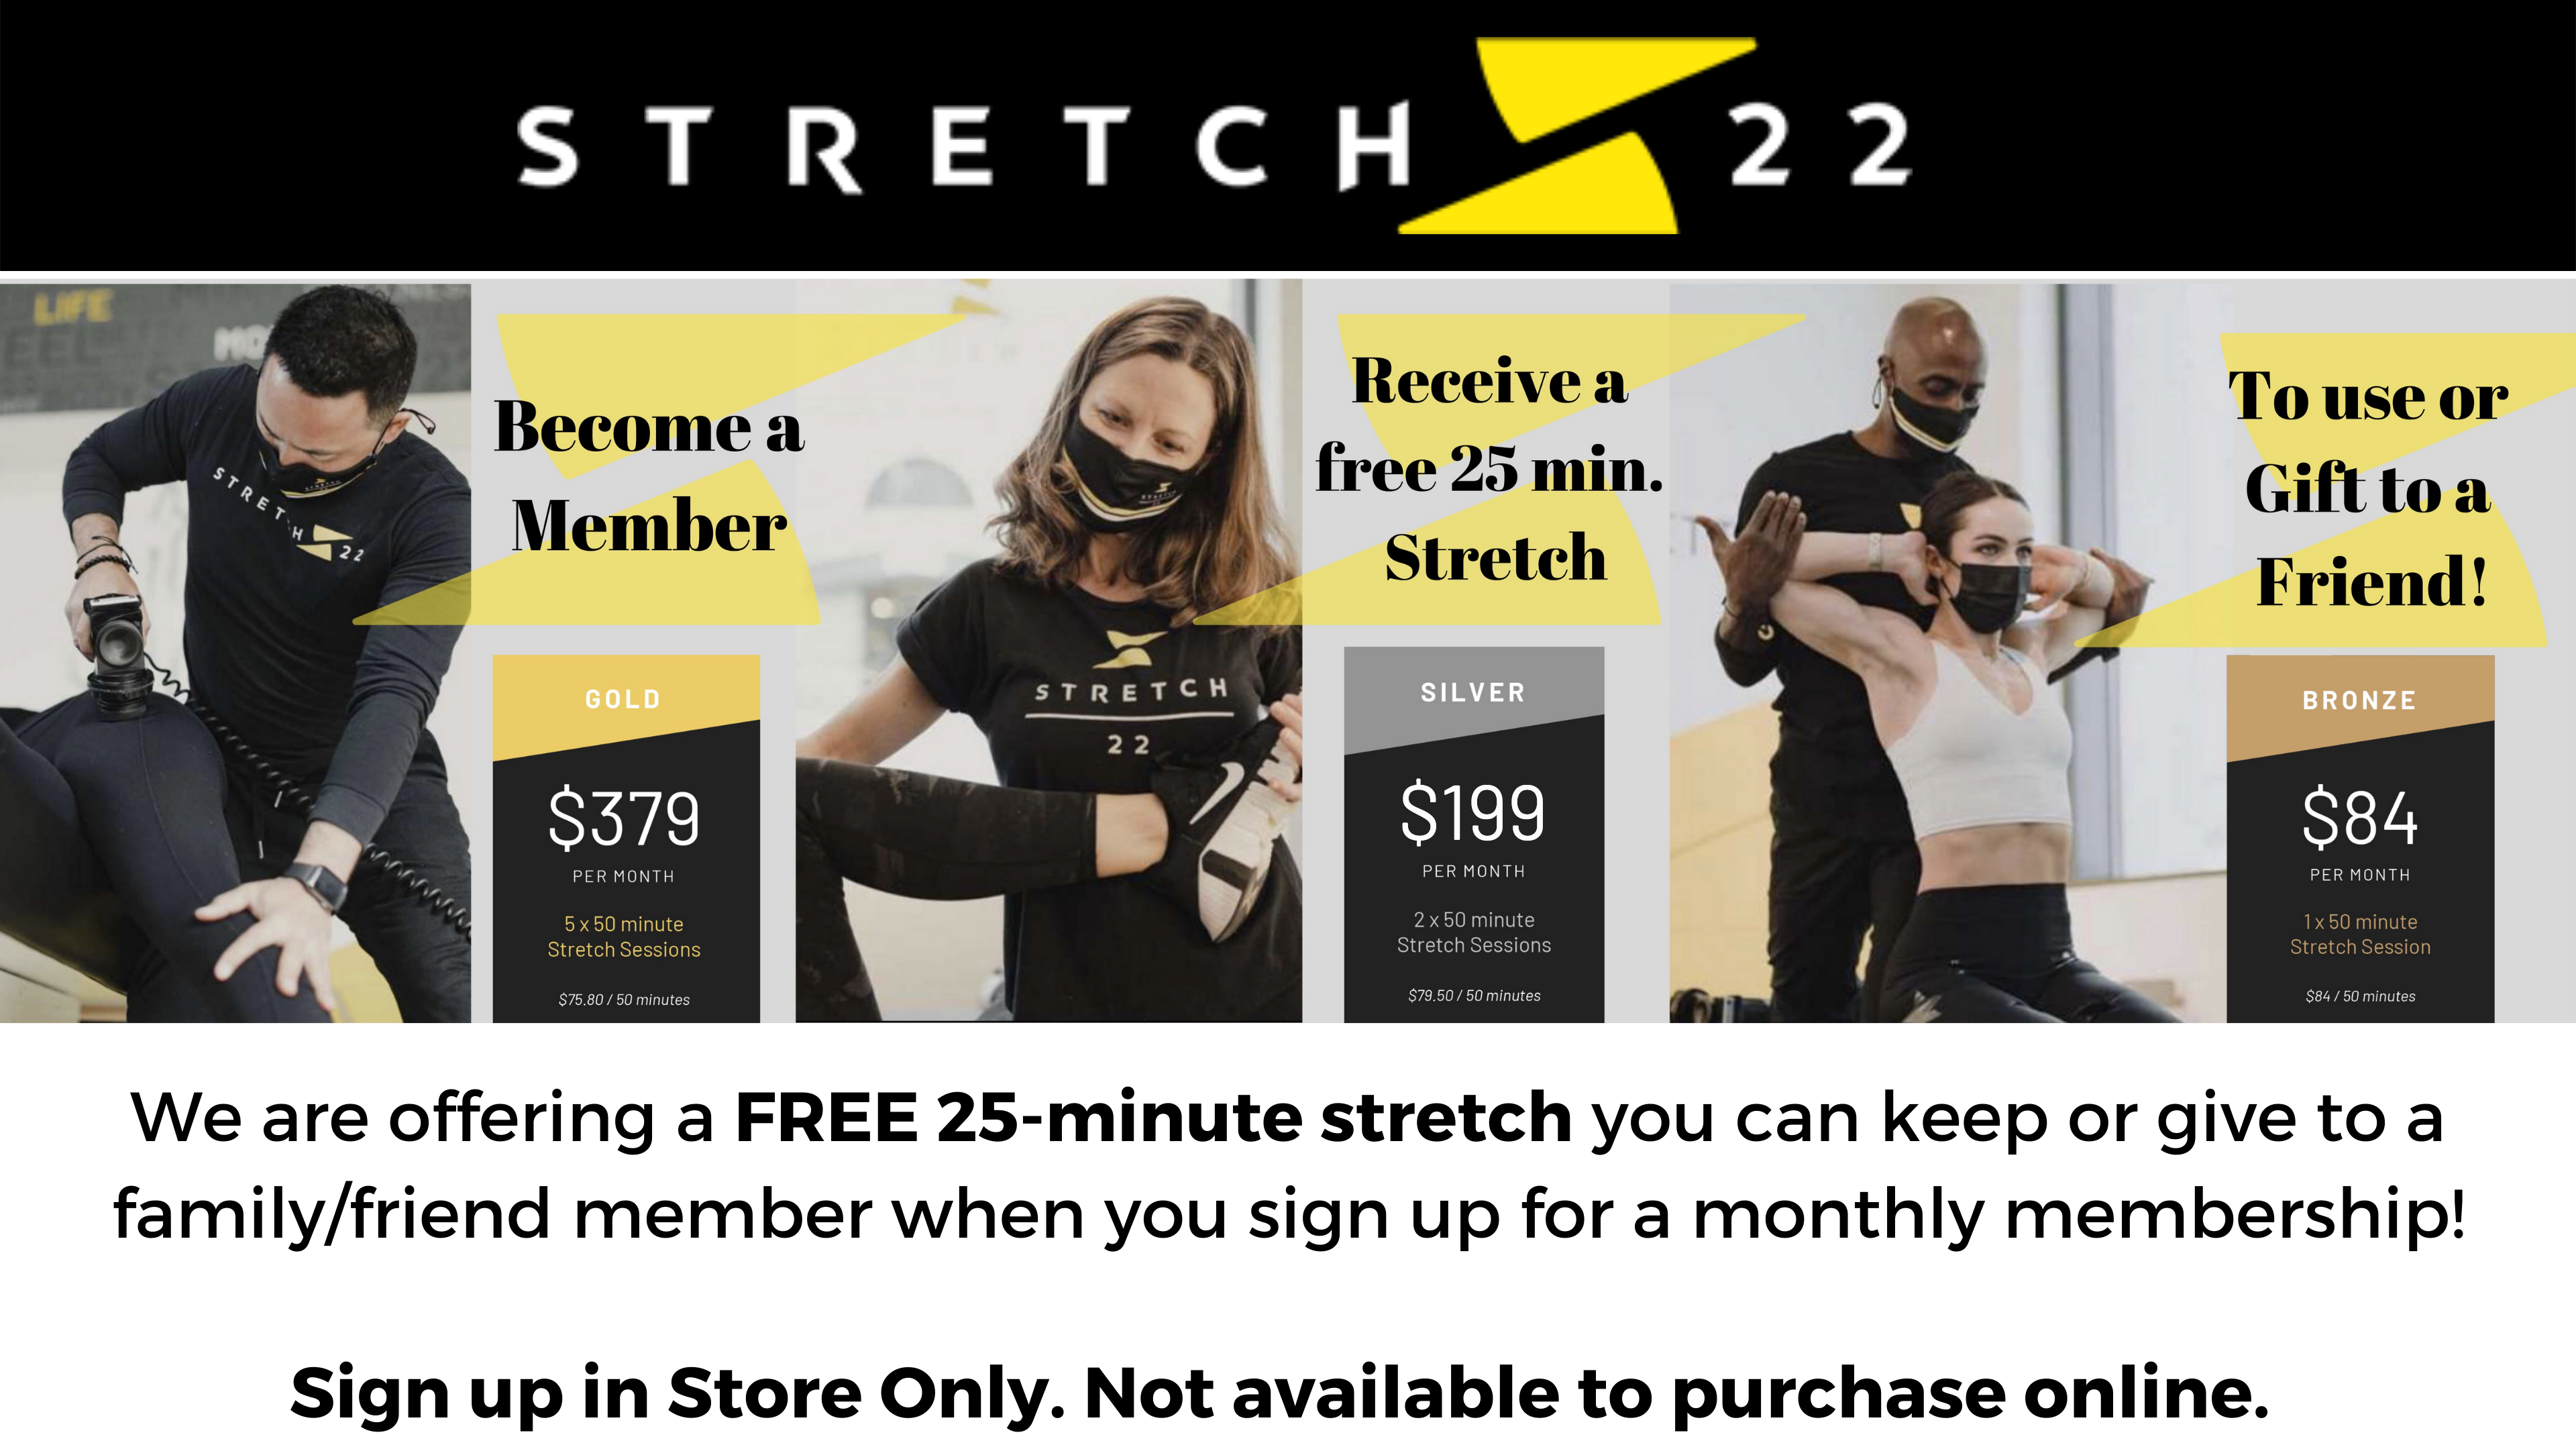 We are offering a FREE 25 minute stretch